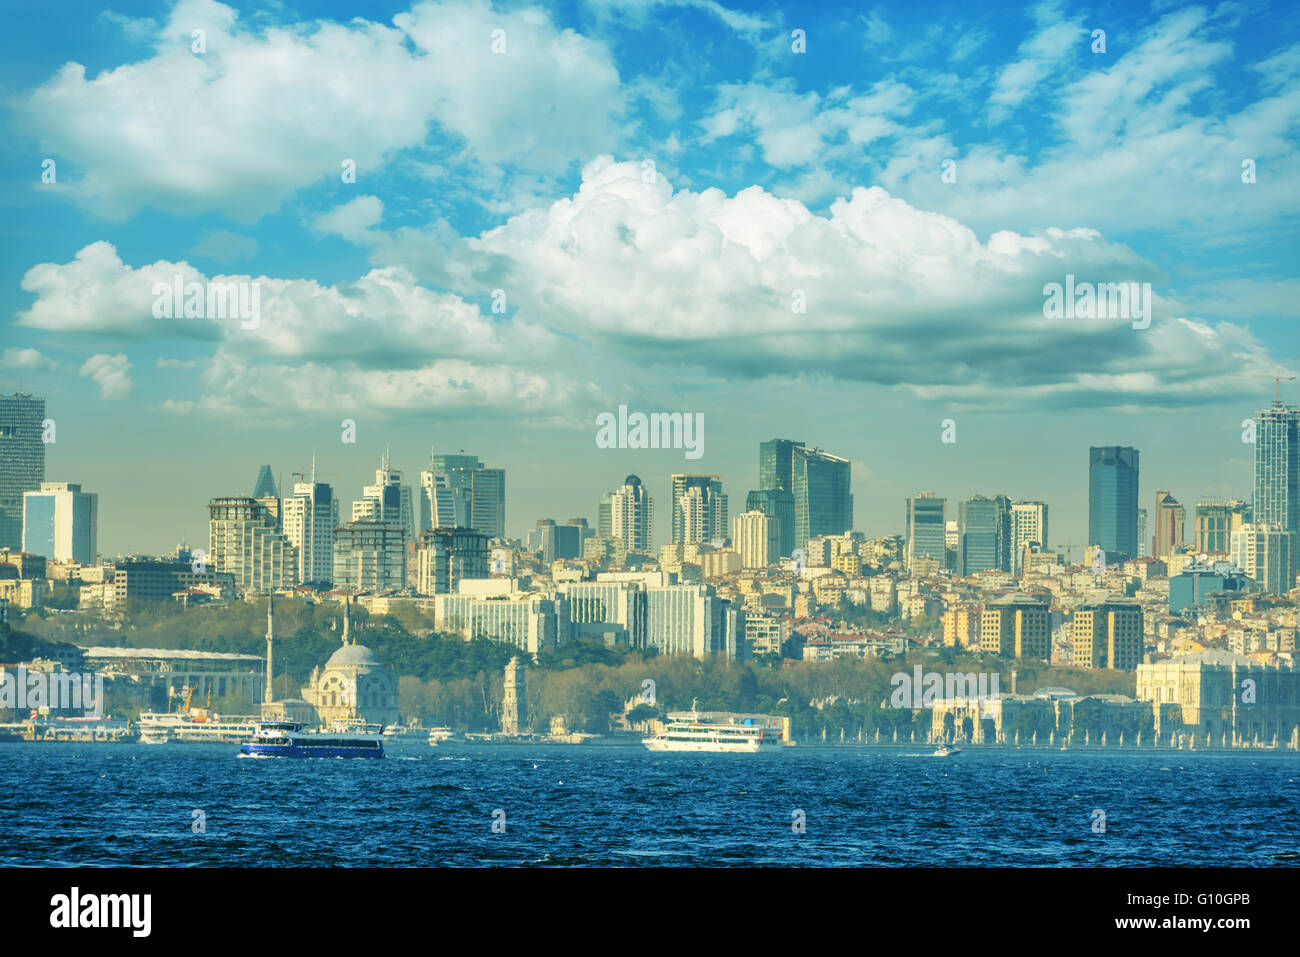 view of istambul city, Turkey - Stock Image